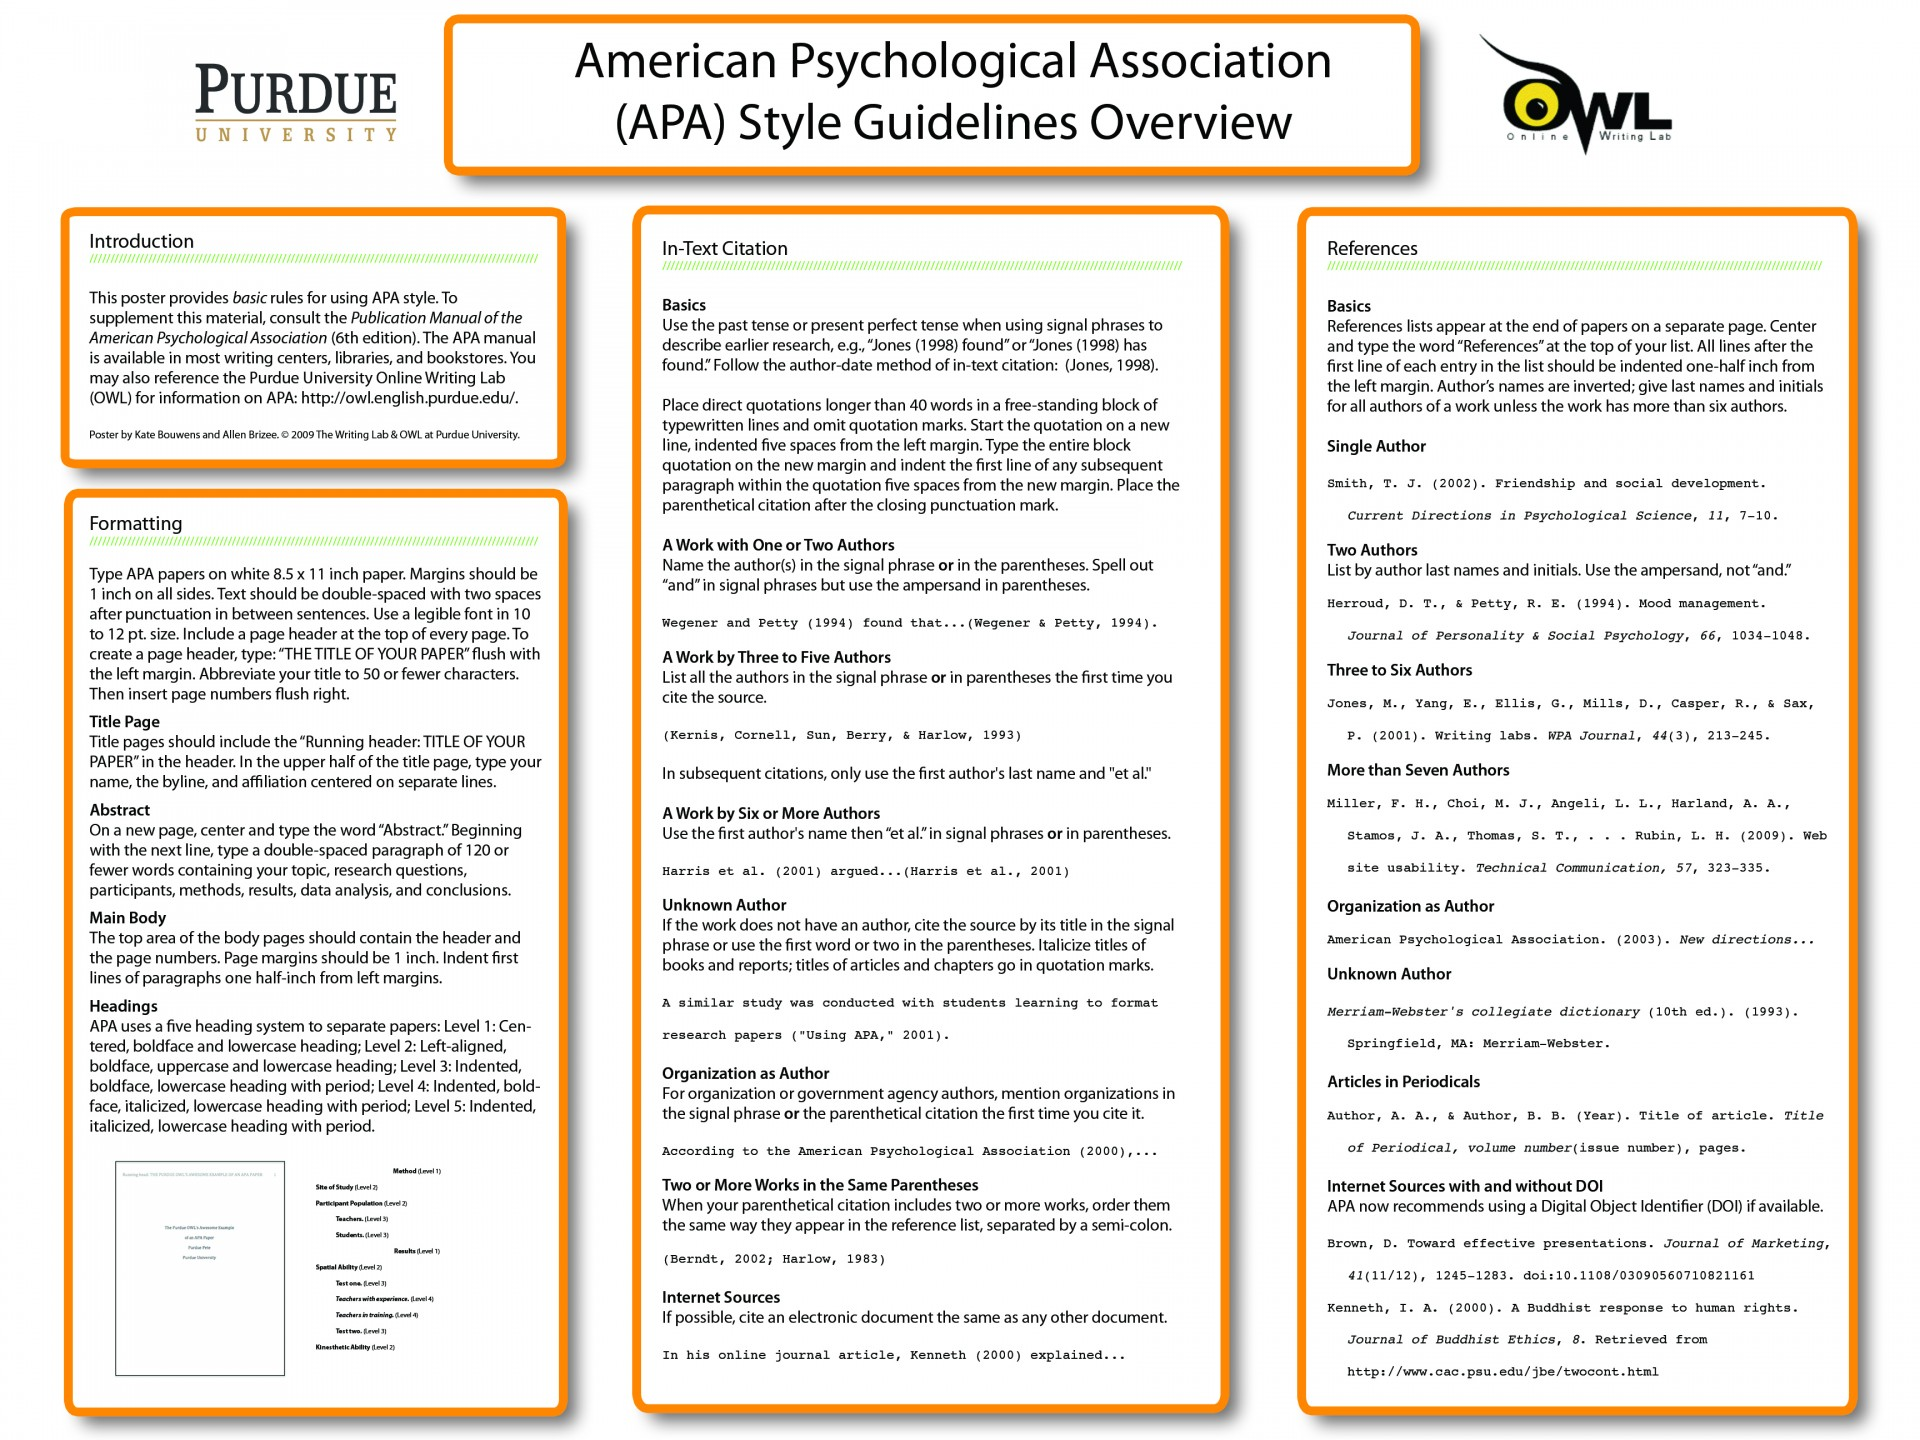 010 Apaposter09 Research Paper How To Write An Outline For Purdue Amazing A Owl 1920